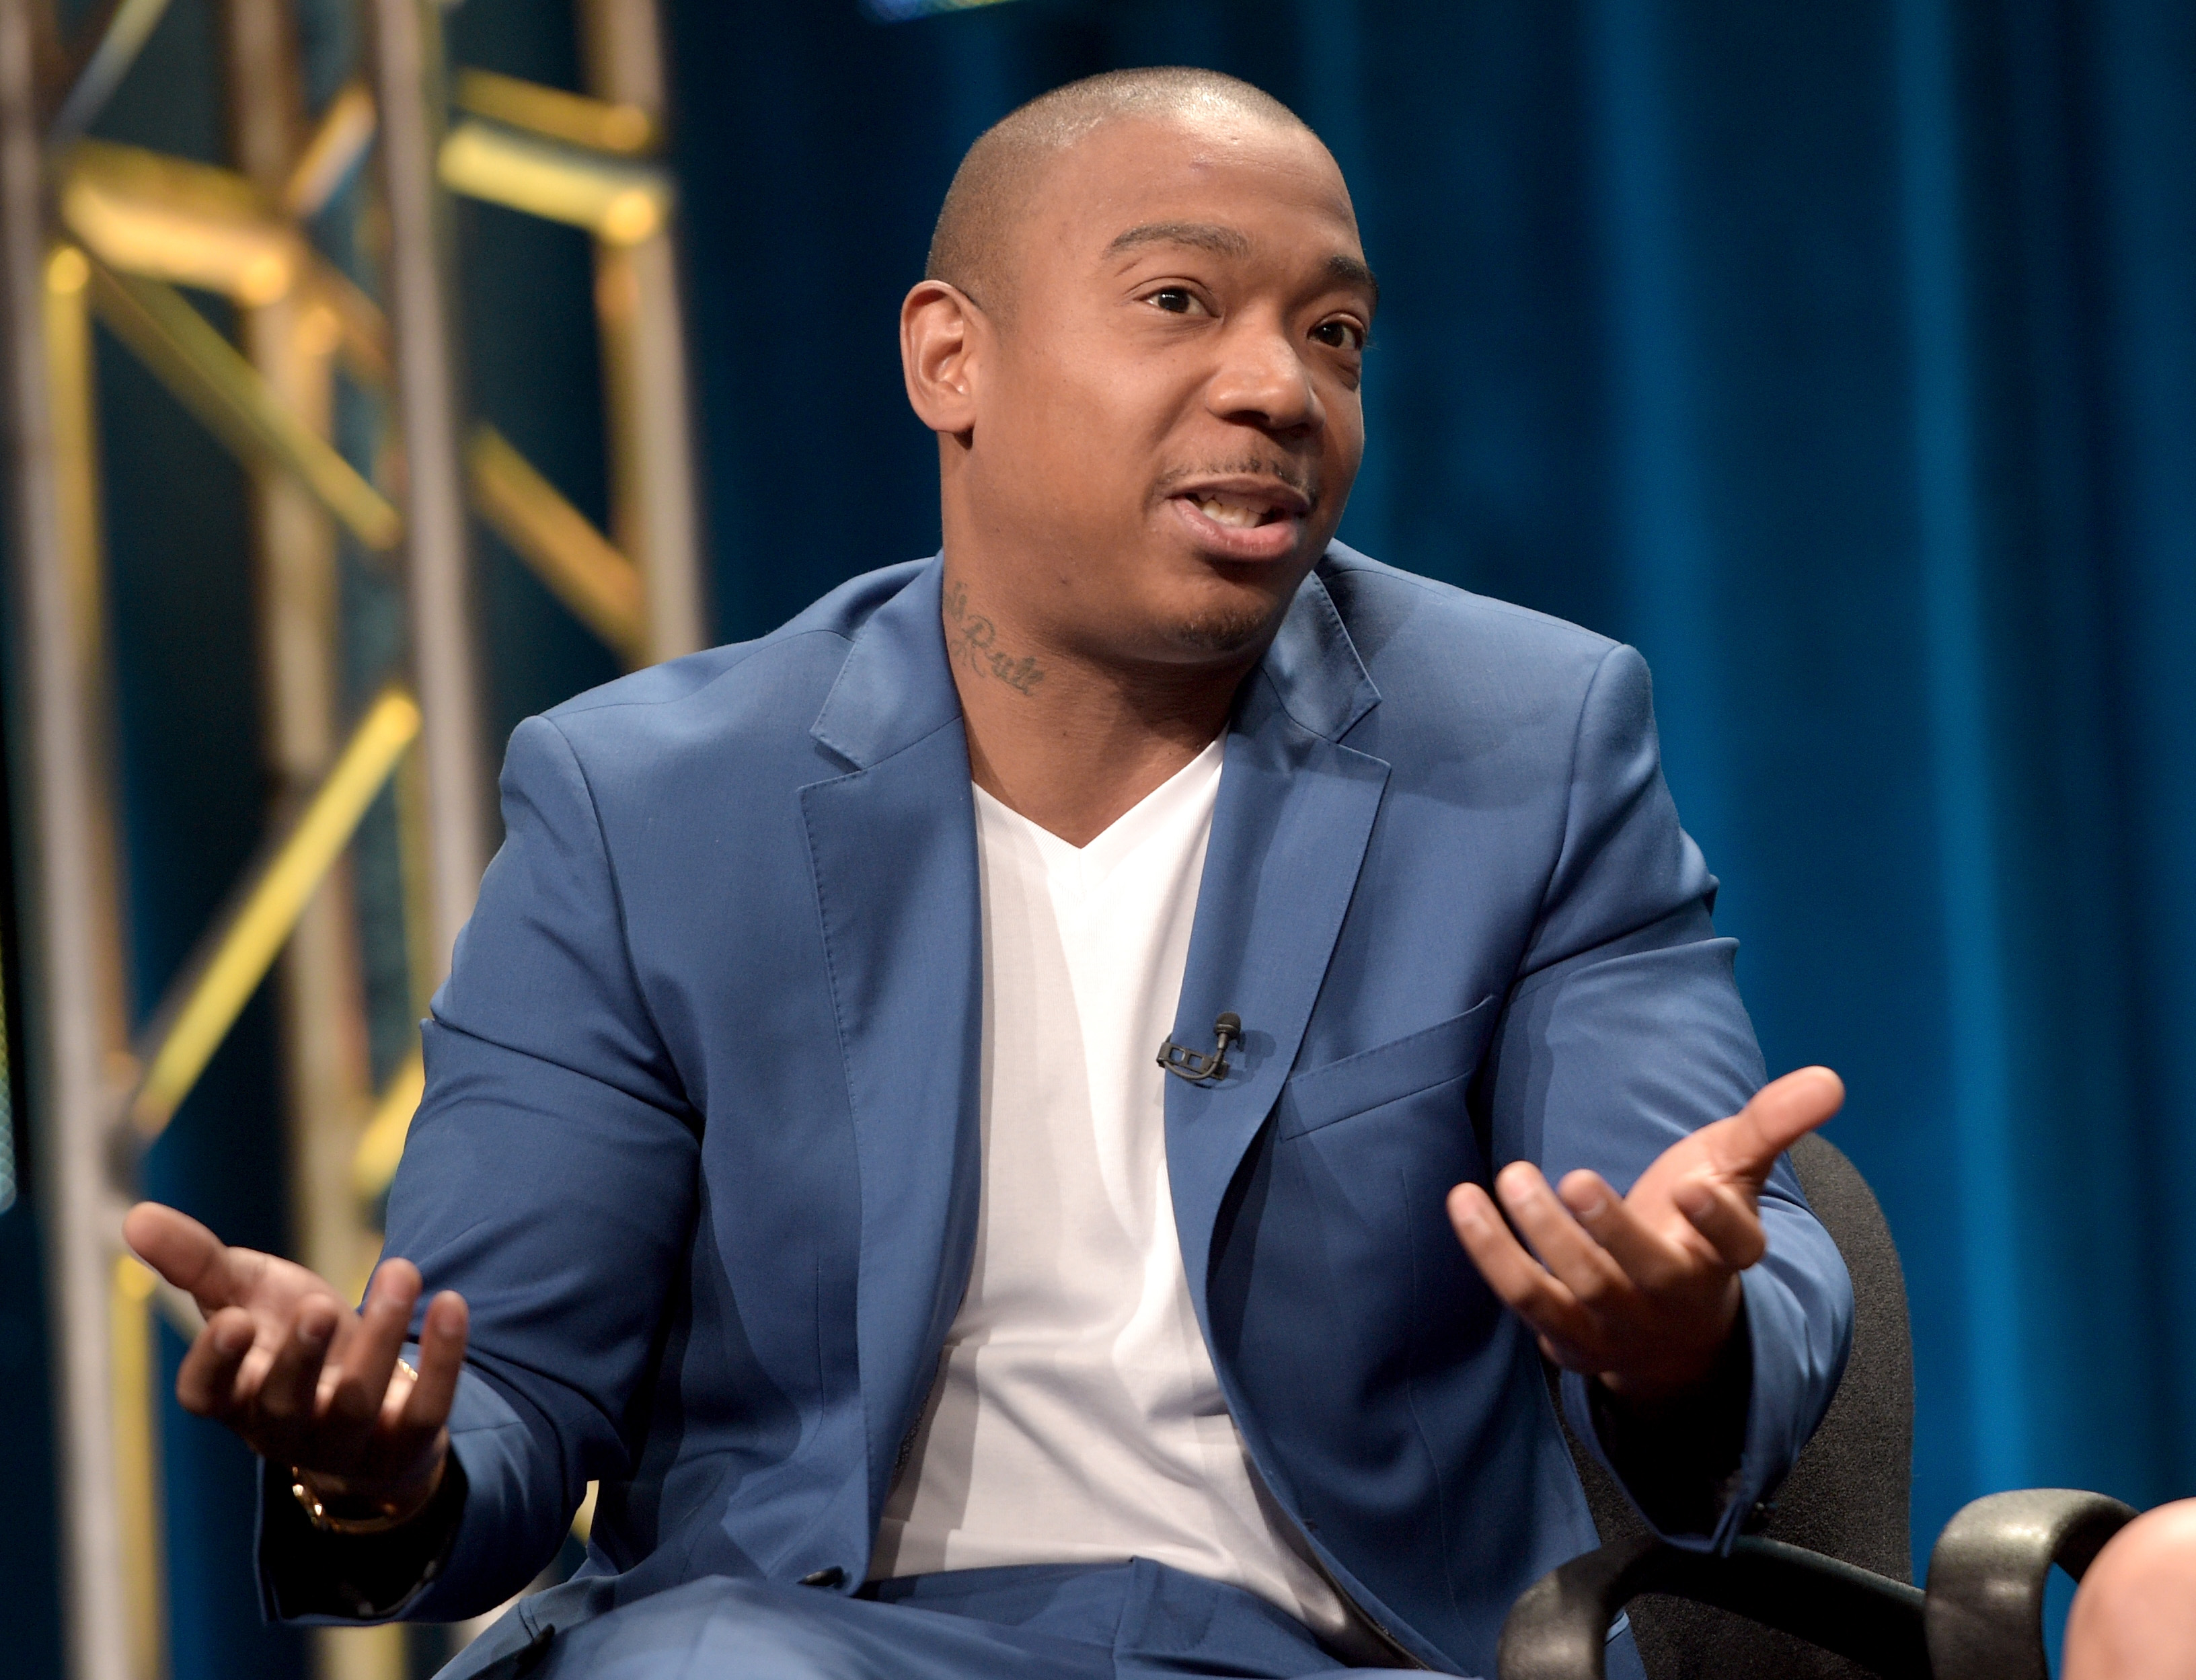 Ja Rule, co-owner of the Fyre Festival, speaks onstage during the 'Follow The Rules' panel at the Viacom TCA Presentation at The Beverly Hilton Hotel on July 29, 2015 in Beverly Hills, California.